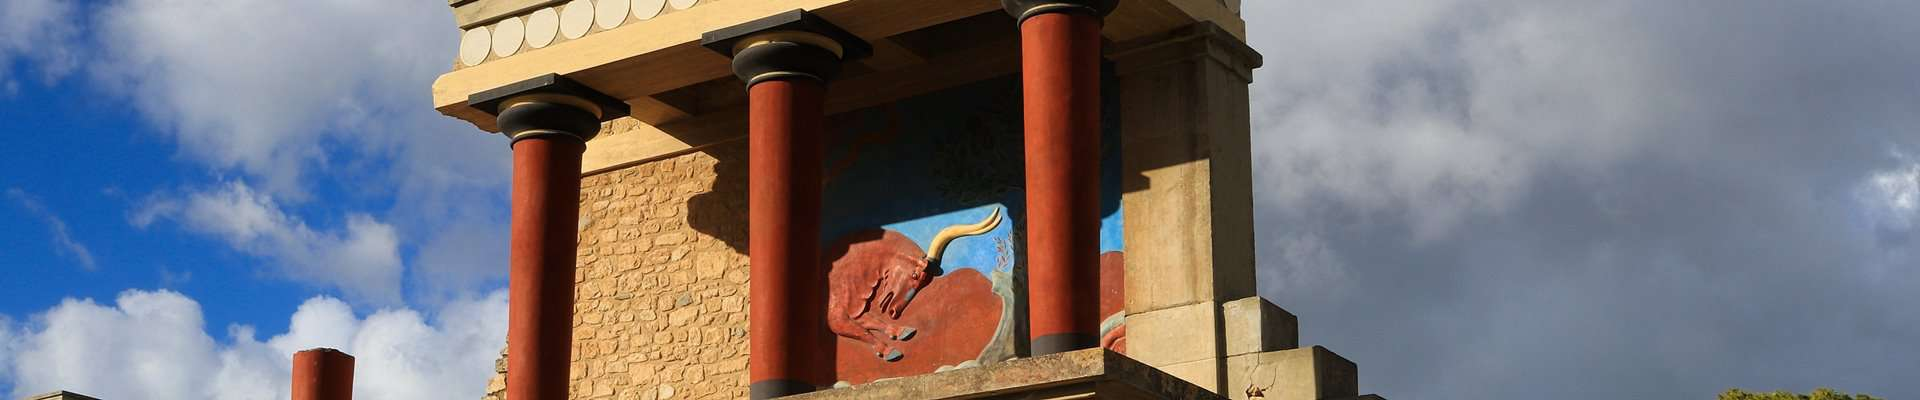 Reconstructions of the archaeological site of Knossos in Crete.